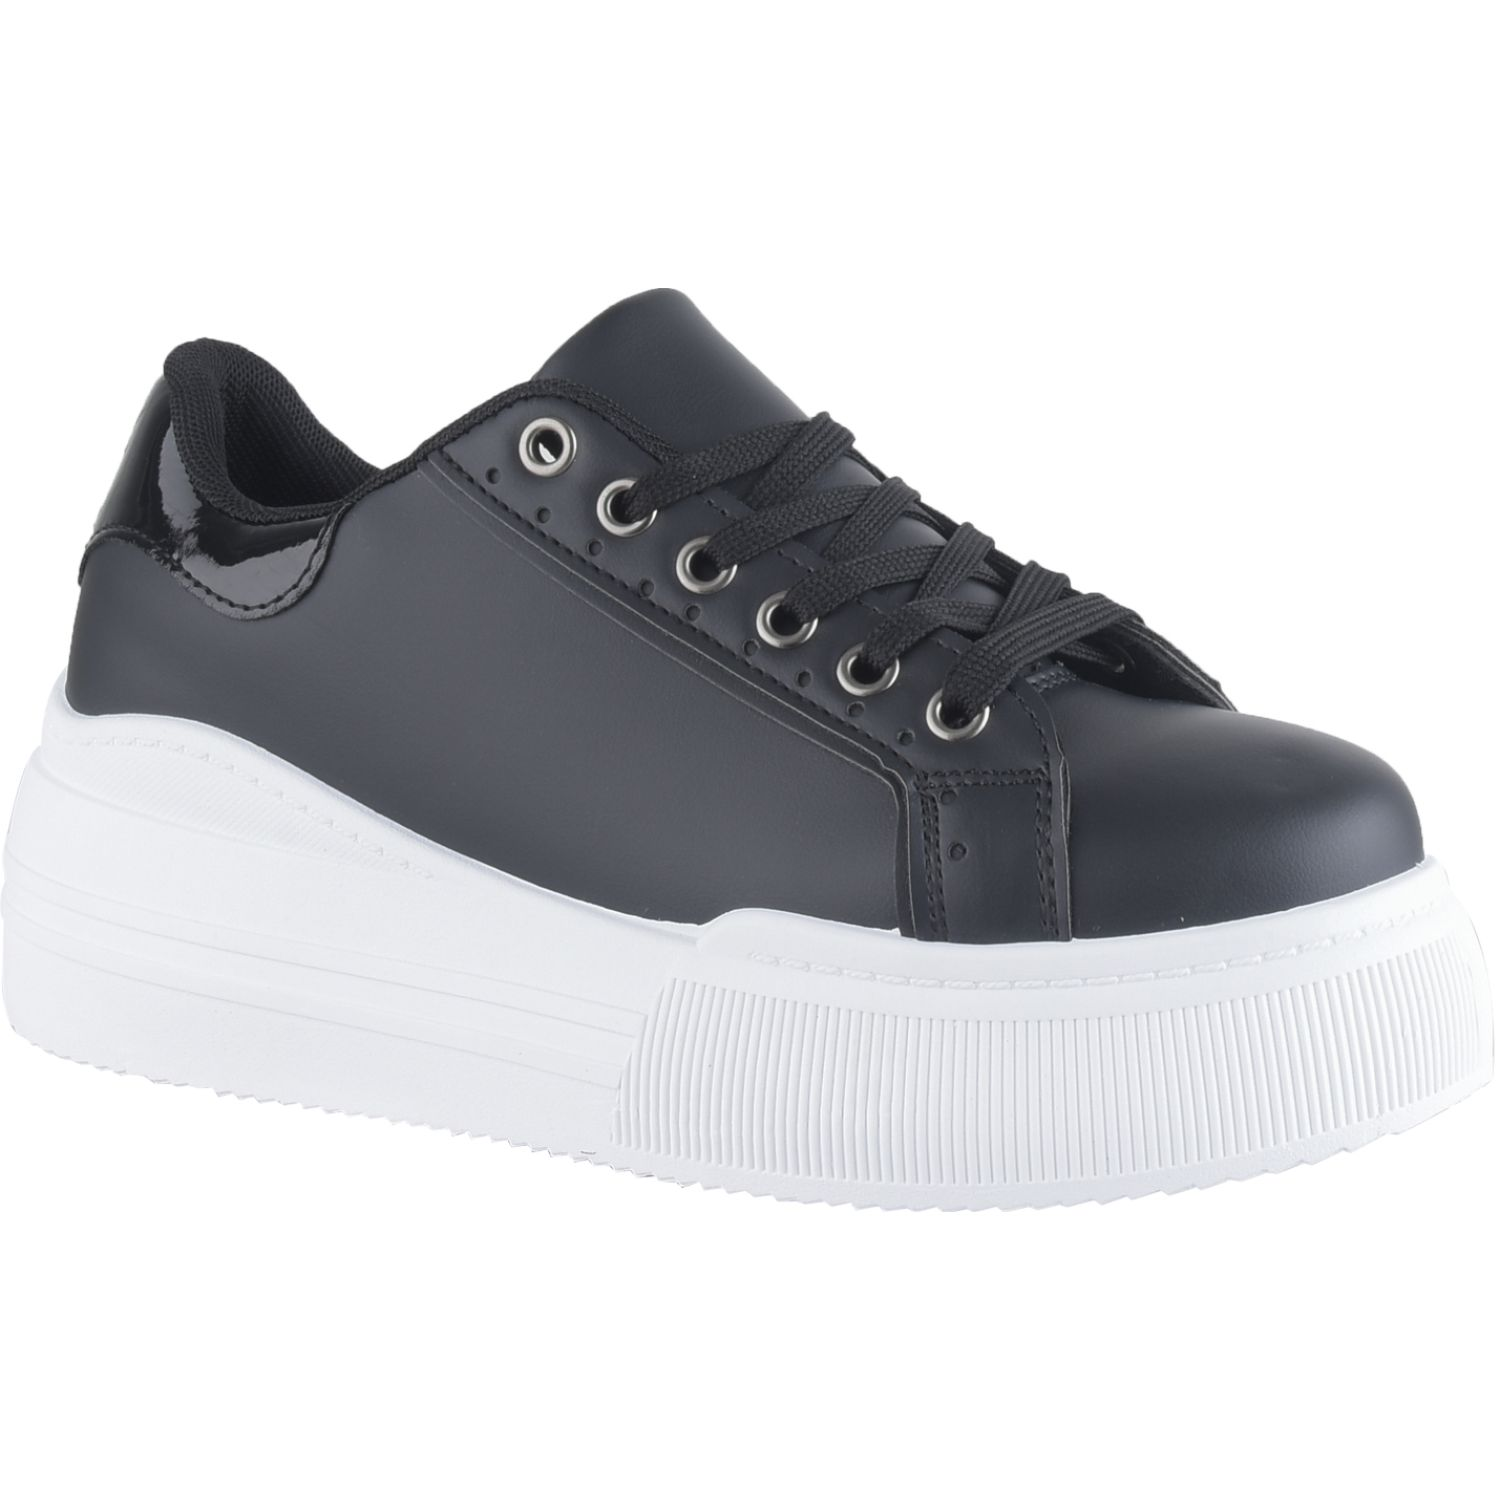 Platanitos Z 1075 Negro Zapatillas Fashion